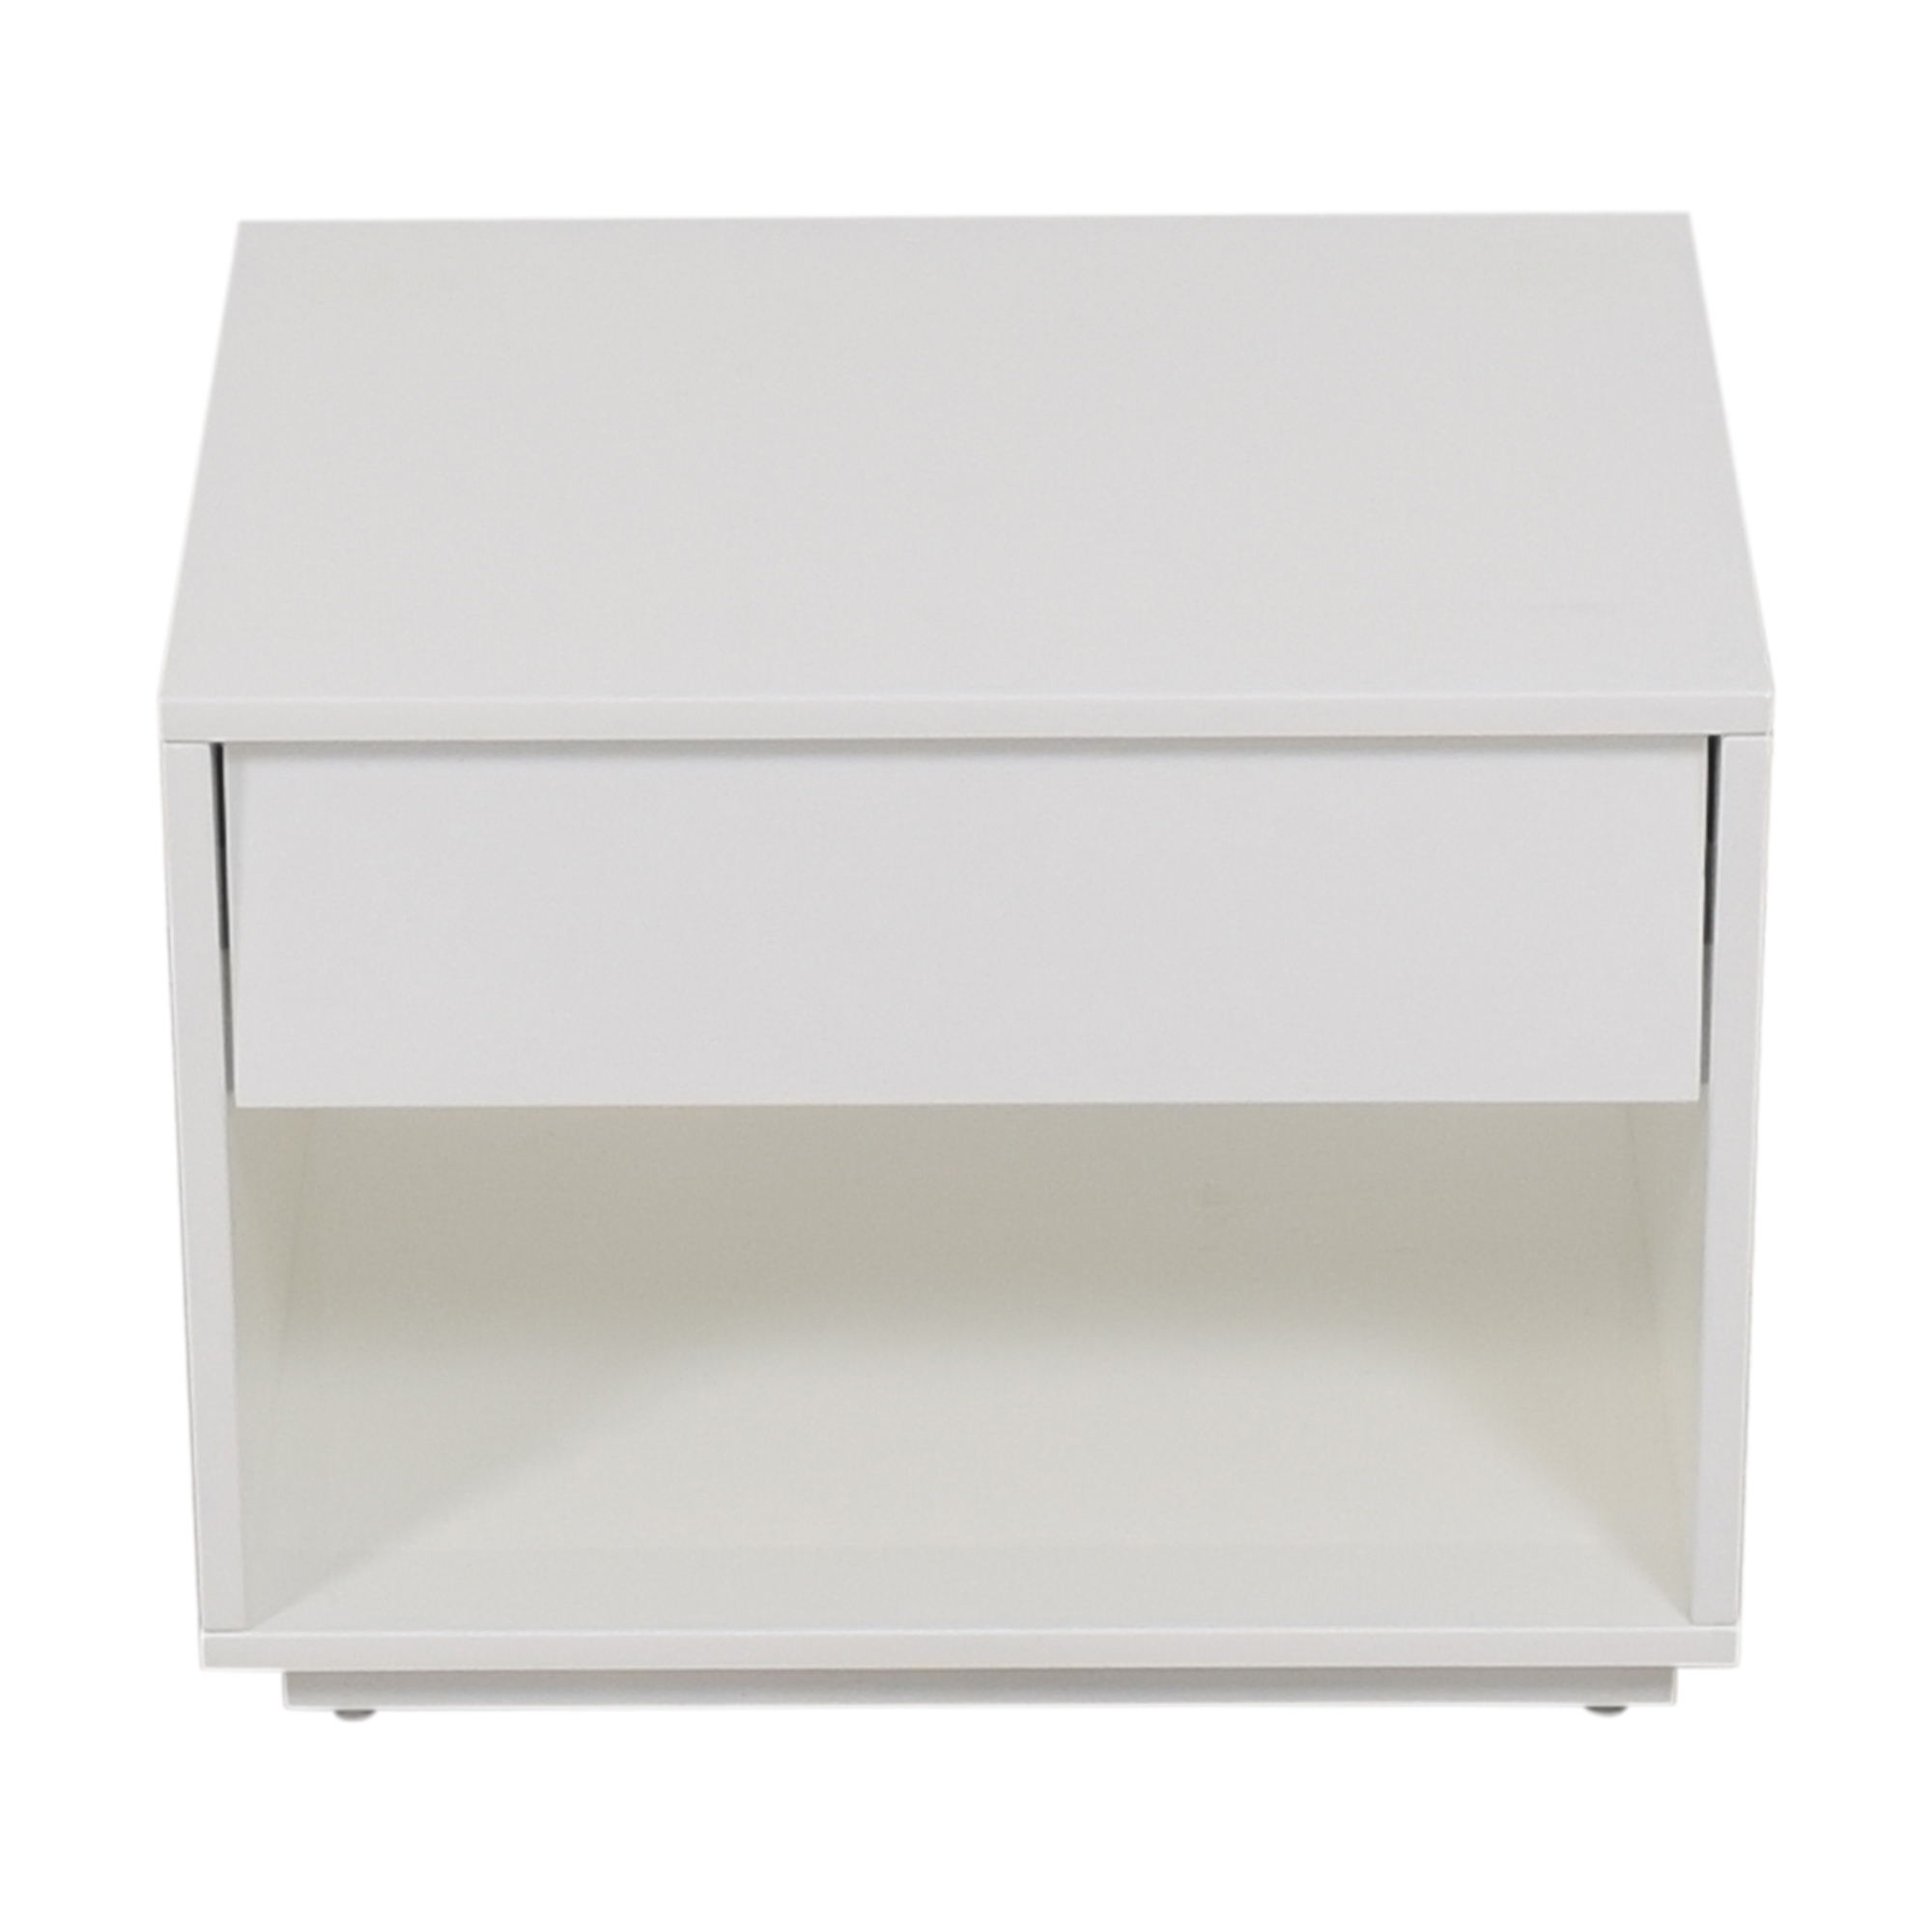 CB2 CB2 Shake One Drawer Nightstand white